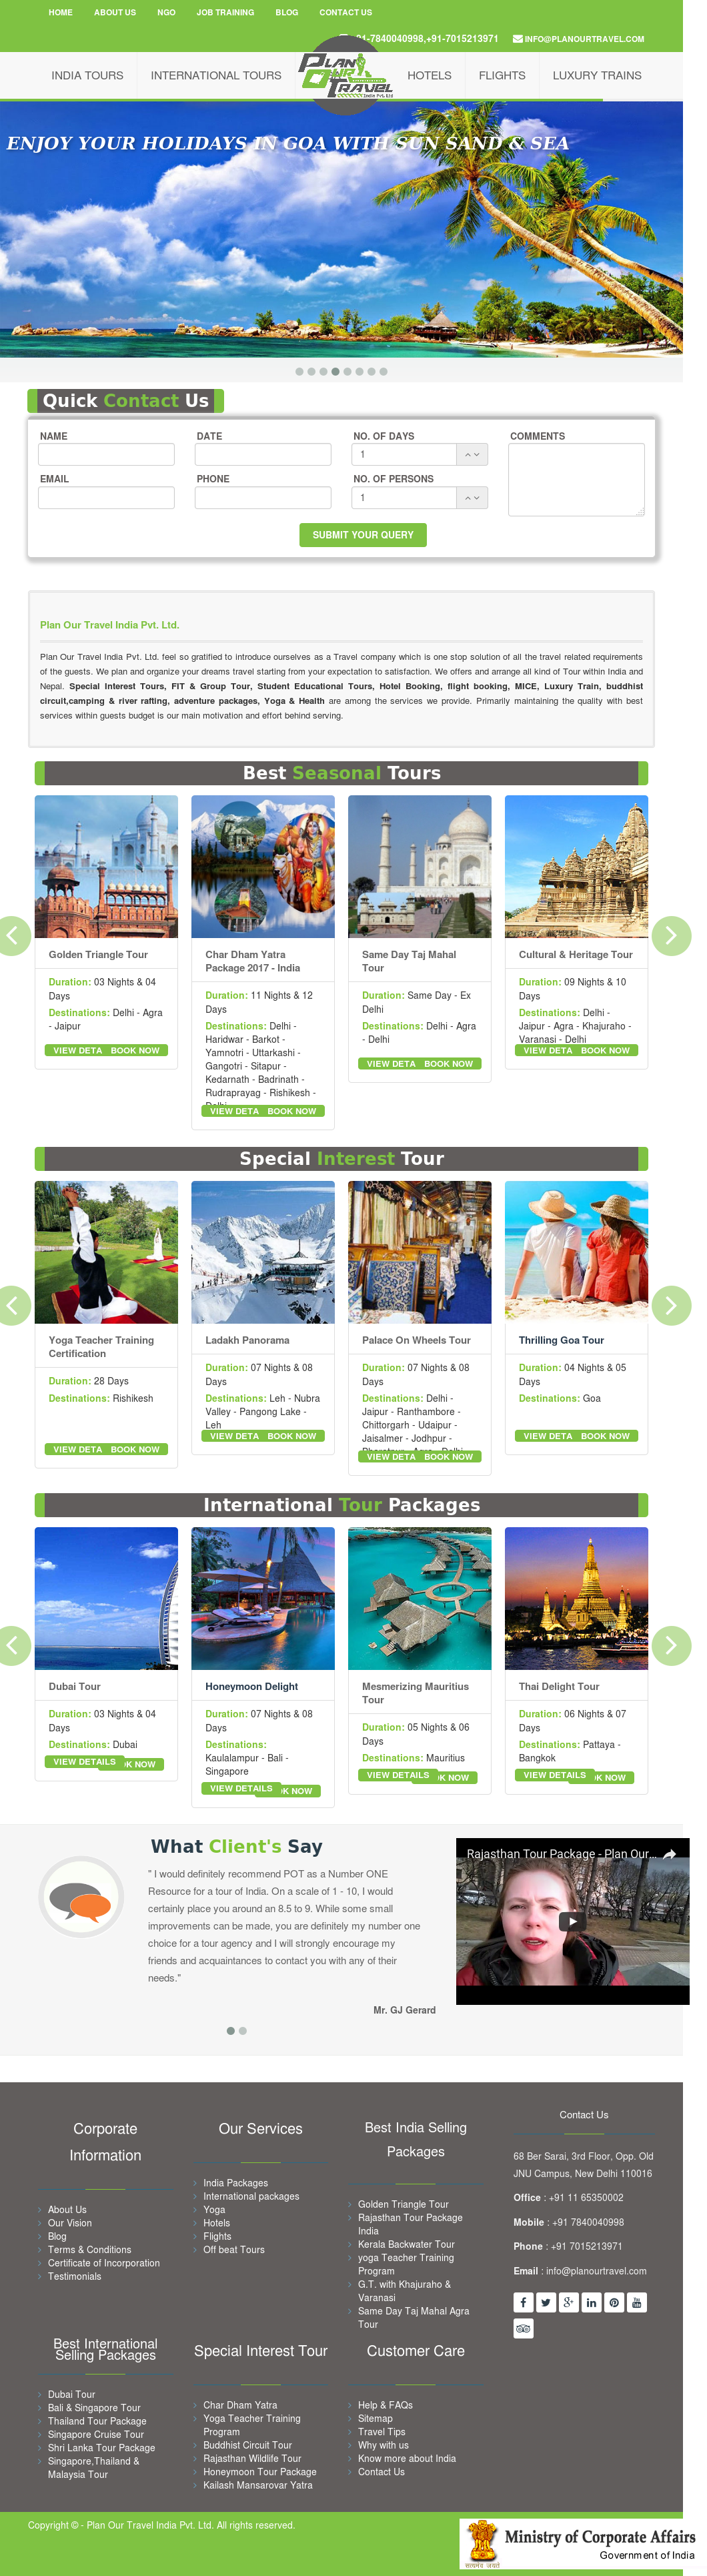 Plan Our Travel India Competitors, Revenue and Employees